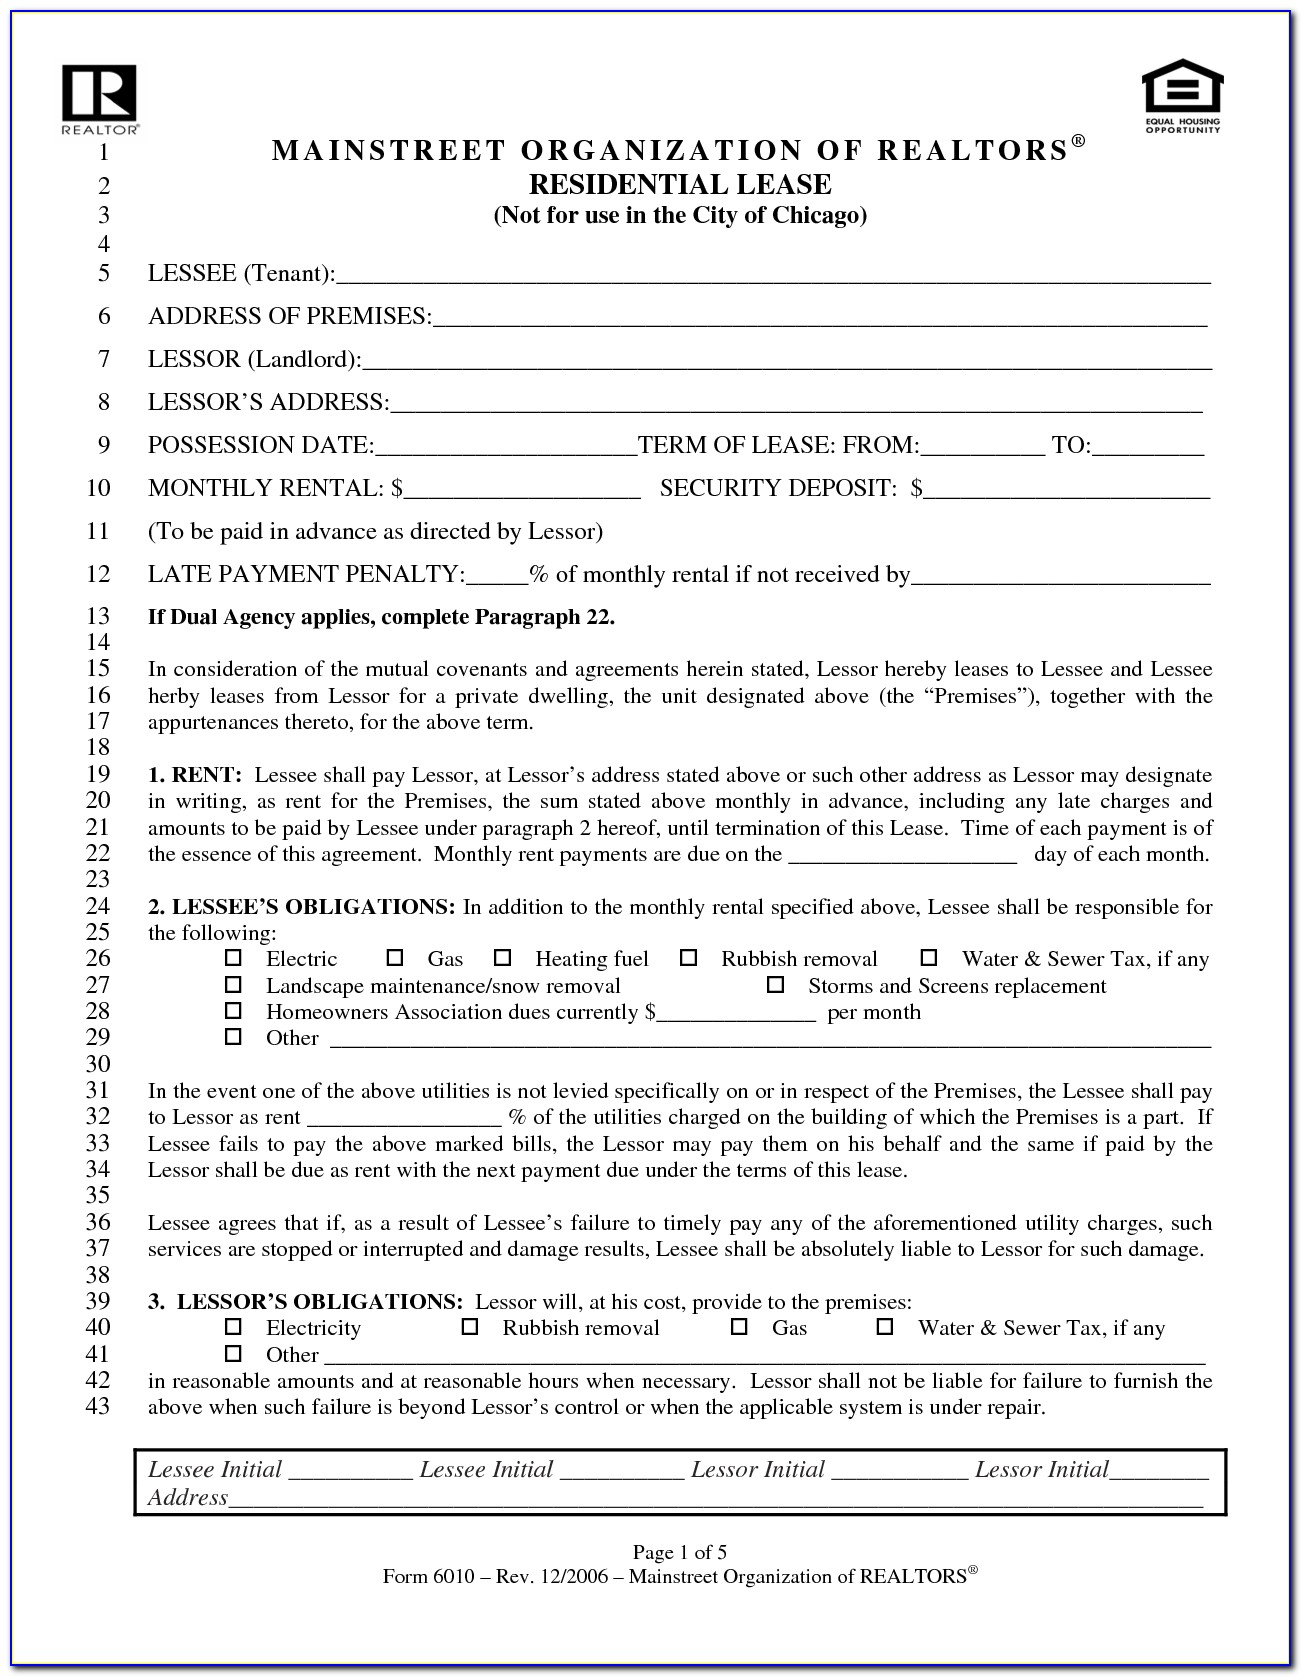 Wisconsin Residential Lease Form Free